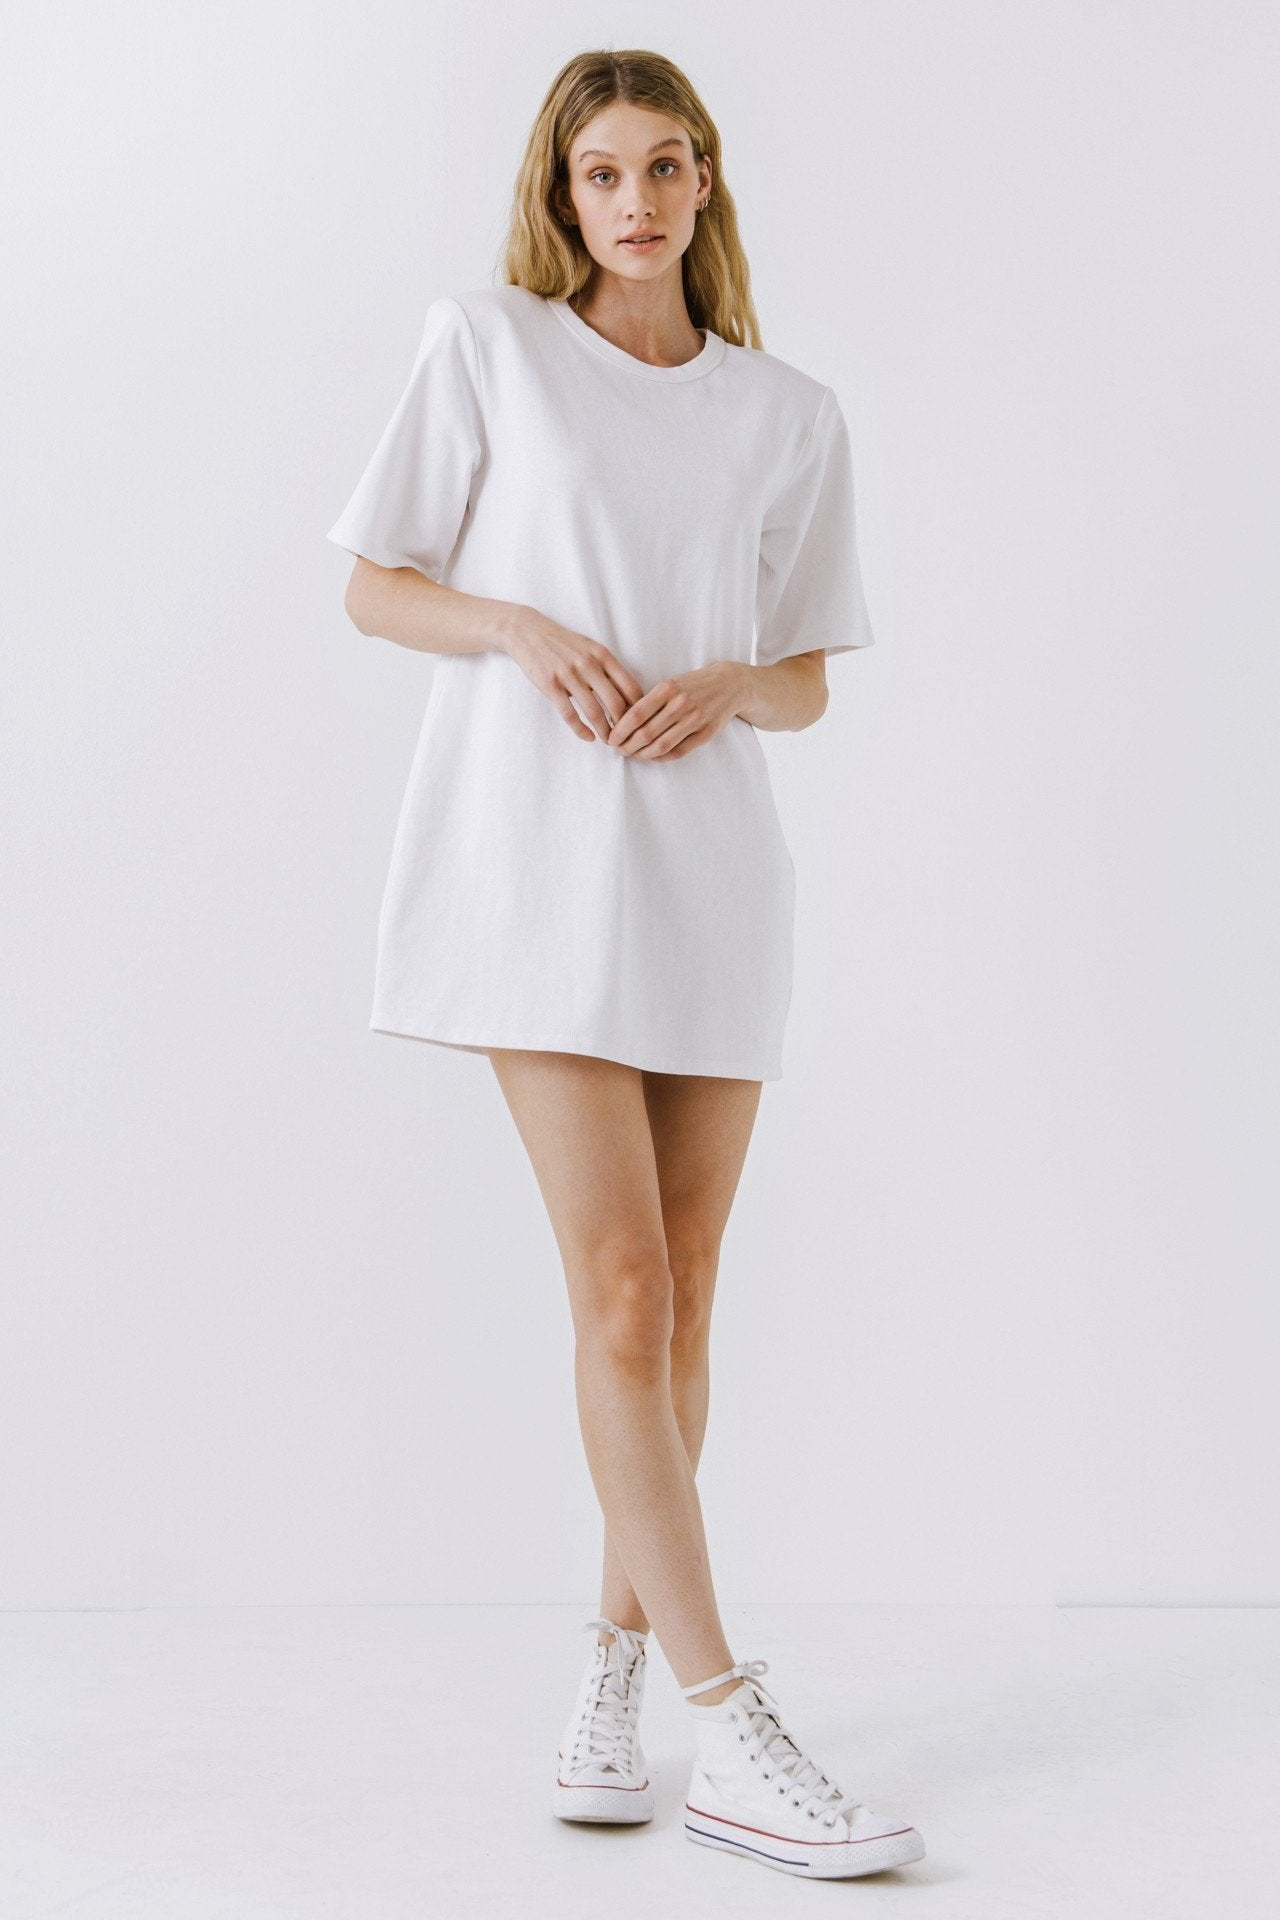 White Shoulder Pad T-Shirt Dress